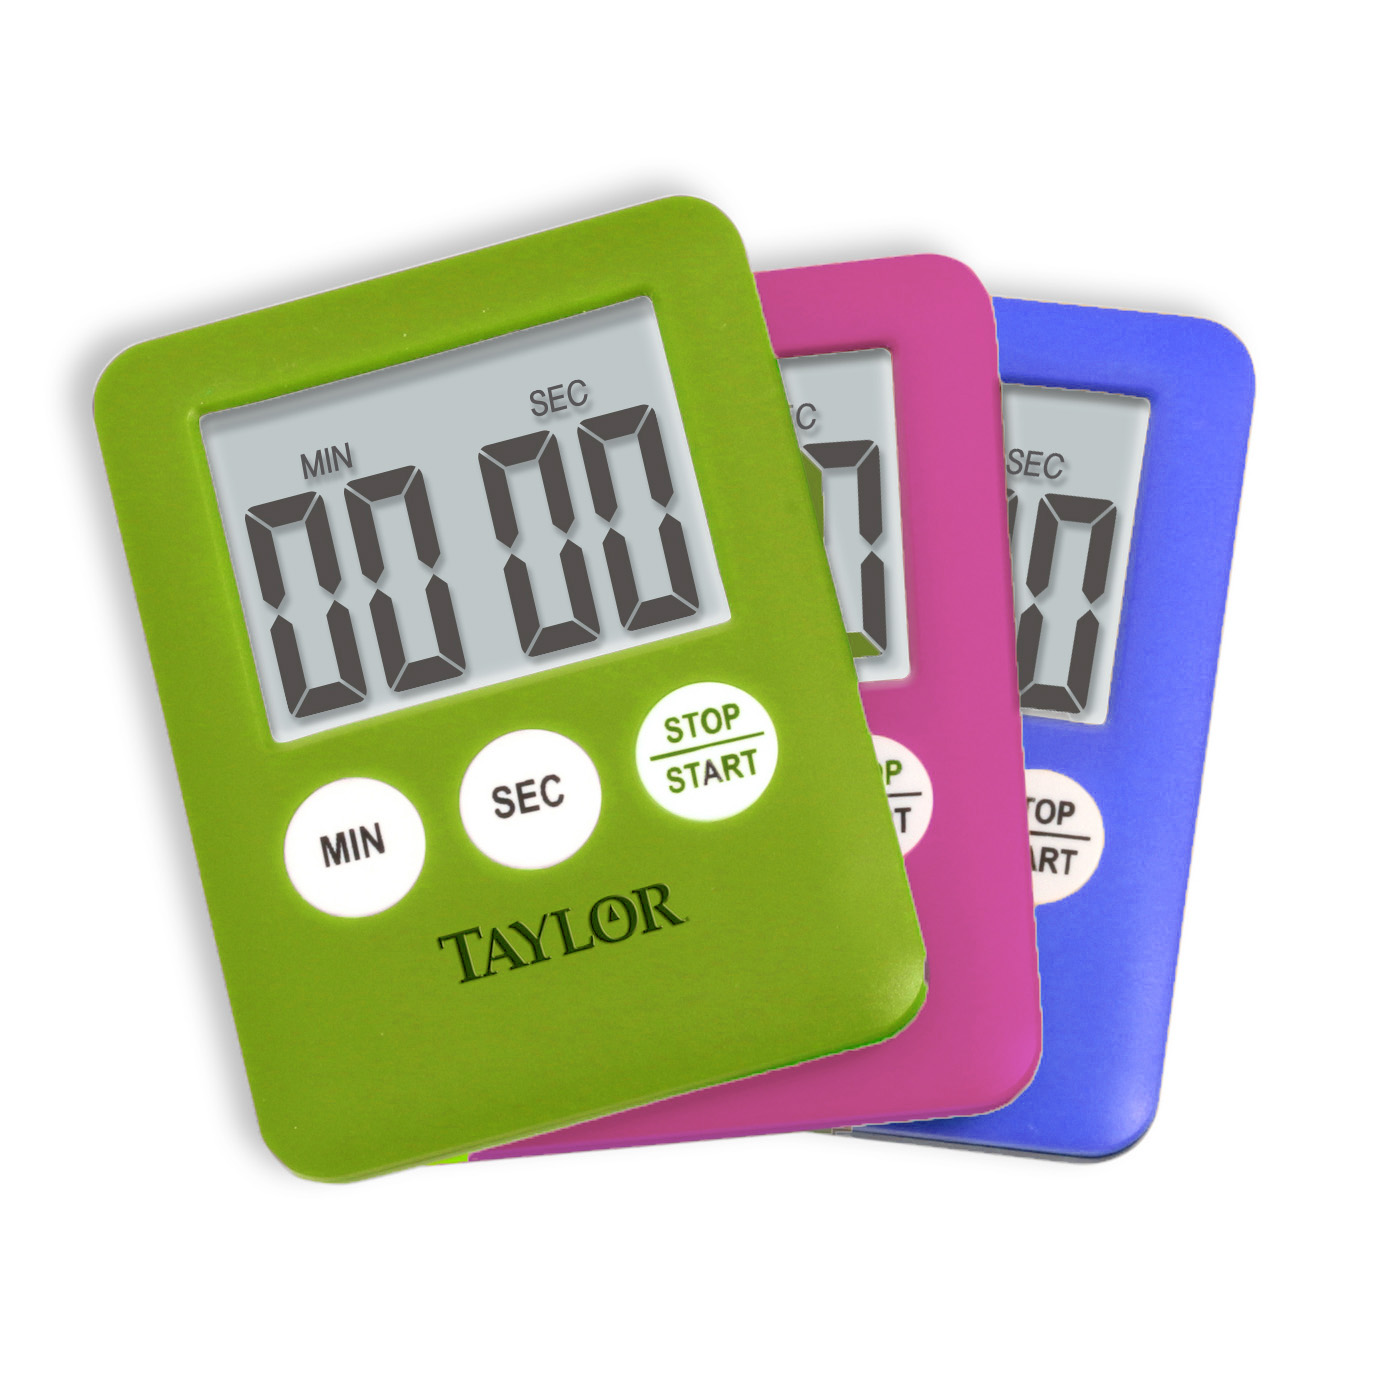 Taylor Mini Digital Kitchen Timer, Assorted Colors